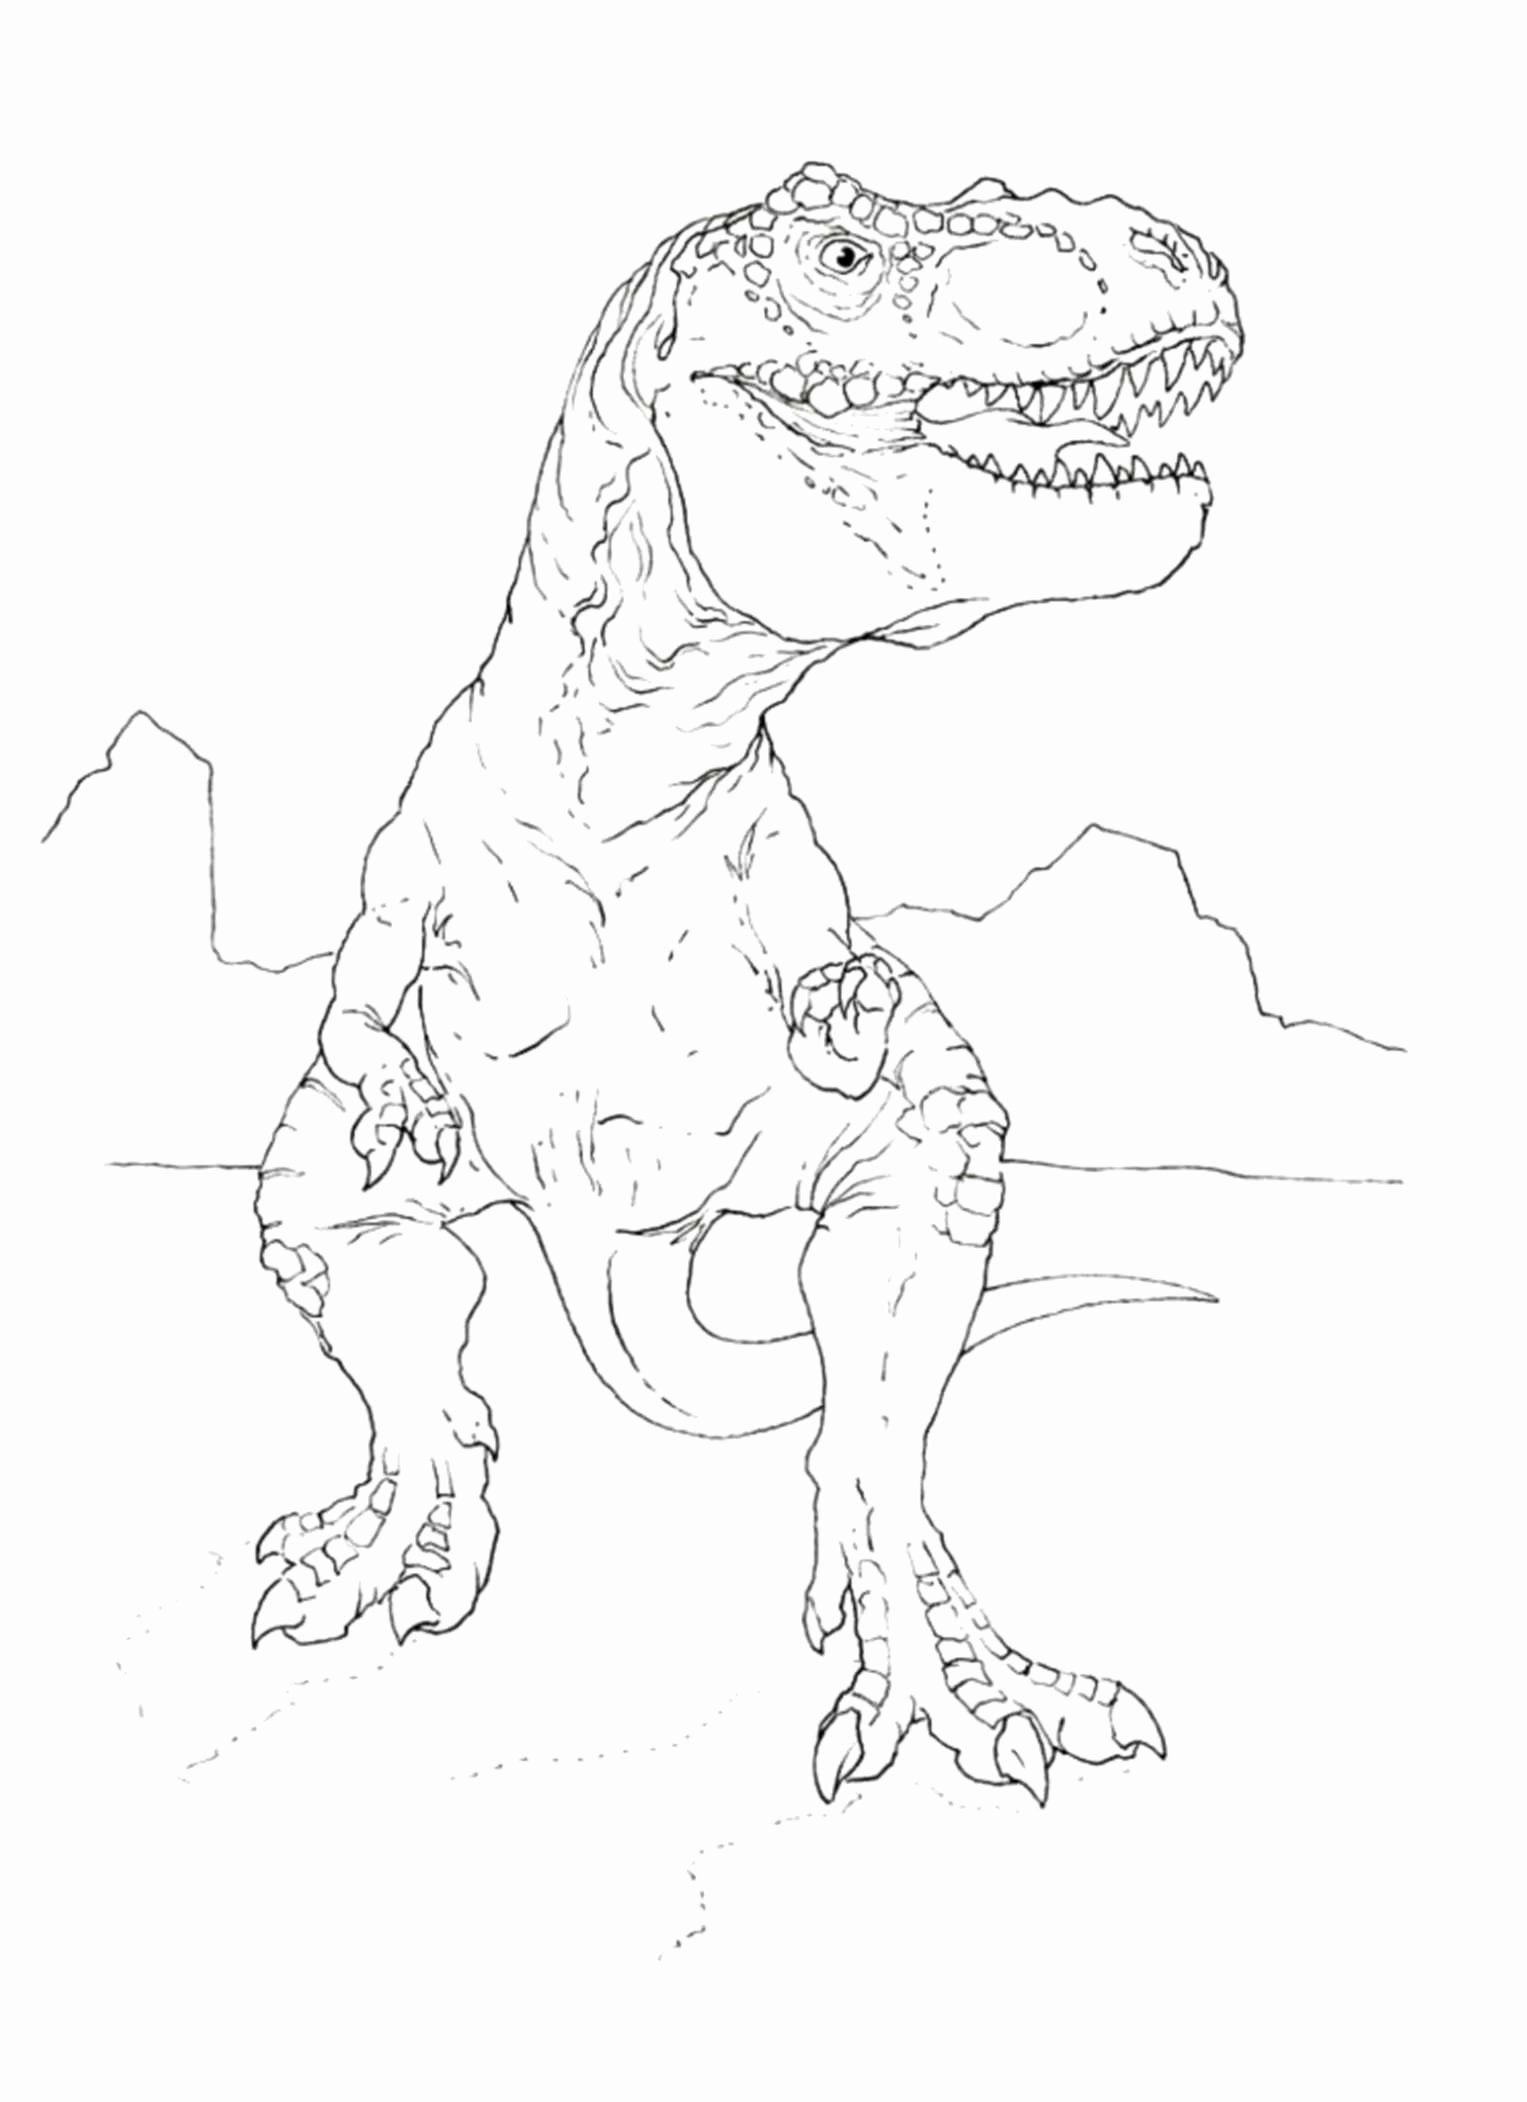 Dinosaur Free Coloring Pages Awesome Dinosaur T Rex Coloring Pages